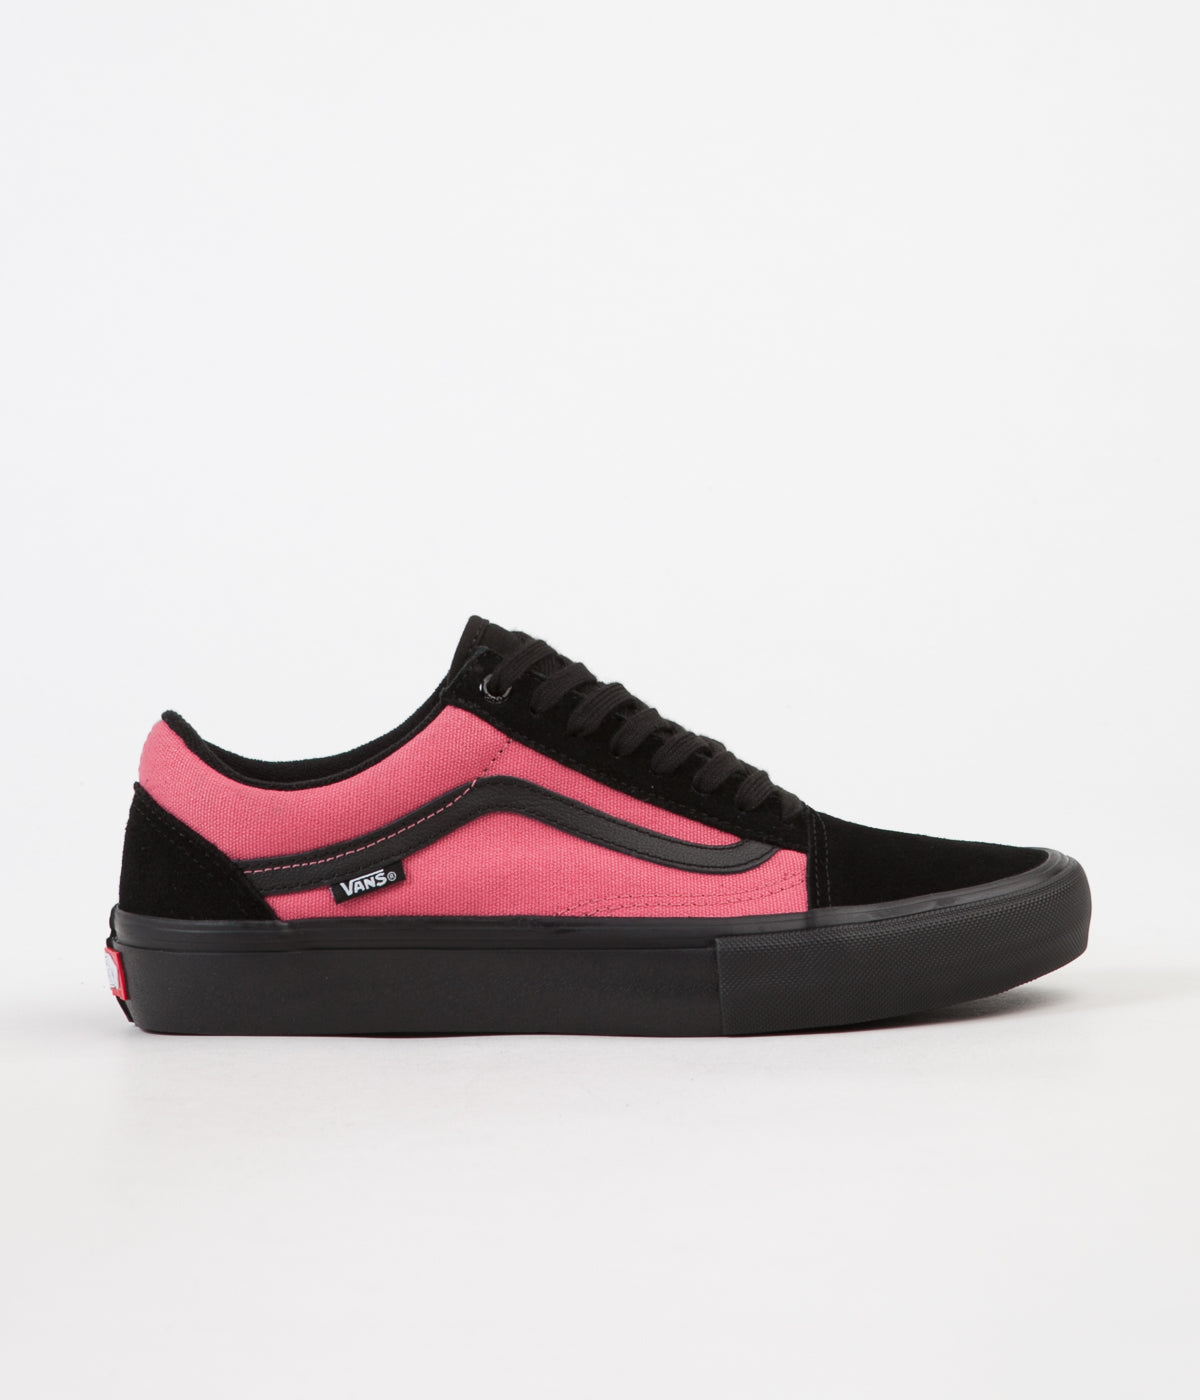 77c48b3c07 Vans Old Skool Pro Asymmetry Shoes - Black   Rose   Blue